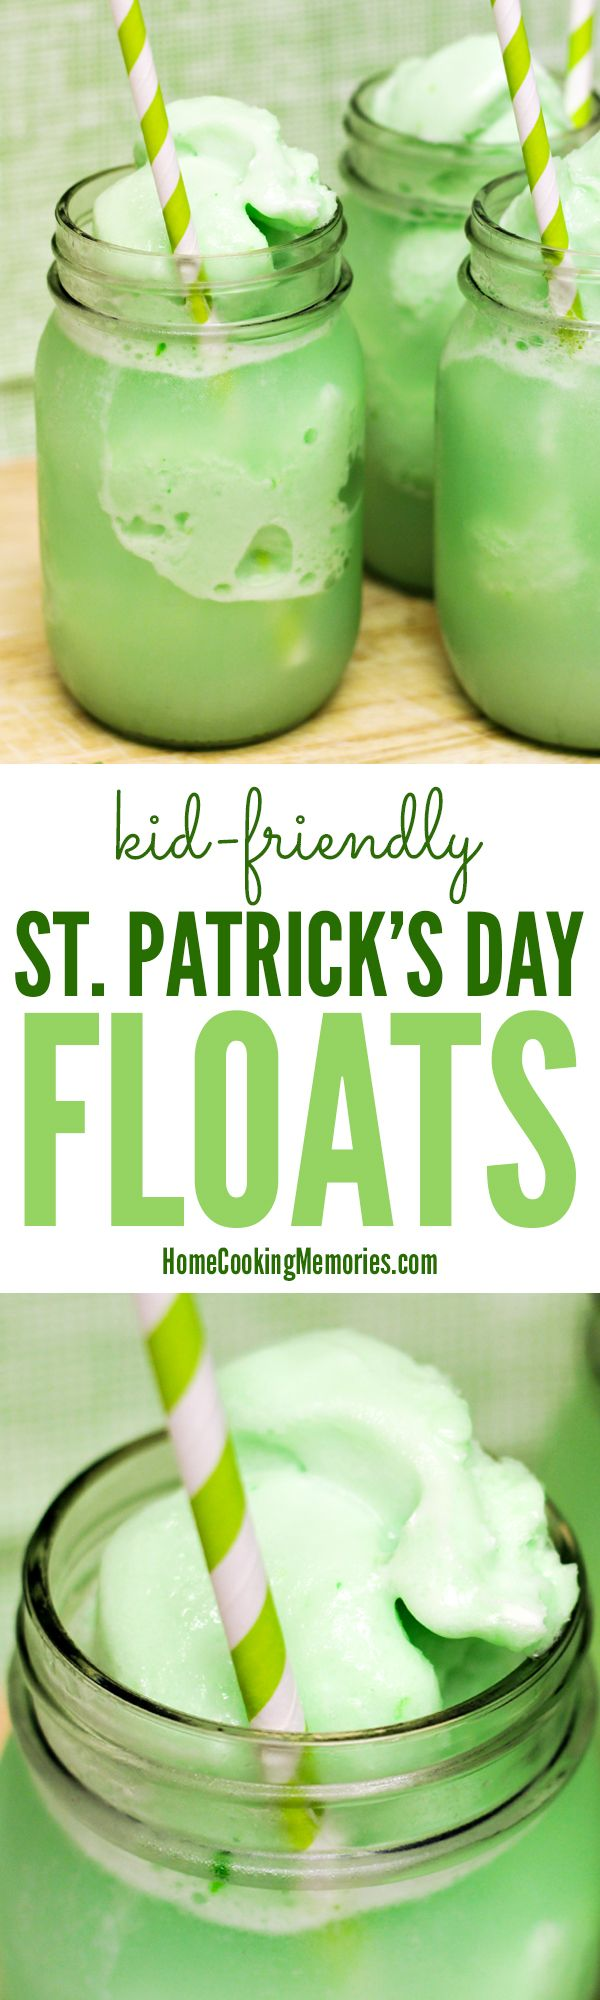 Green recipes for St Patrick's Day are a must! These kid-friendly St Patrick's Day Floats (Lime Sherbet Floats) are a quick & easy St Paddy's Day treat! This drink has only 2 ingredients: lime sherbet & lemon lime soda.